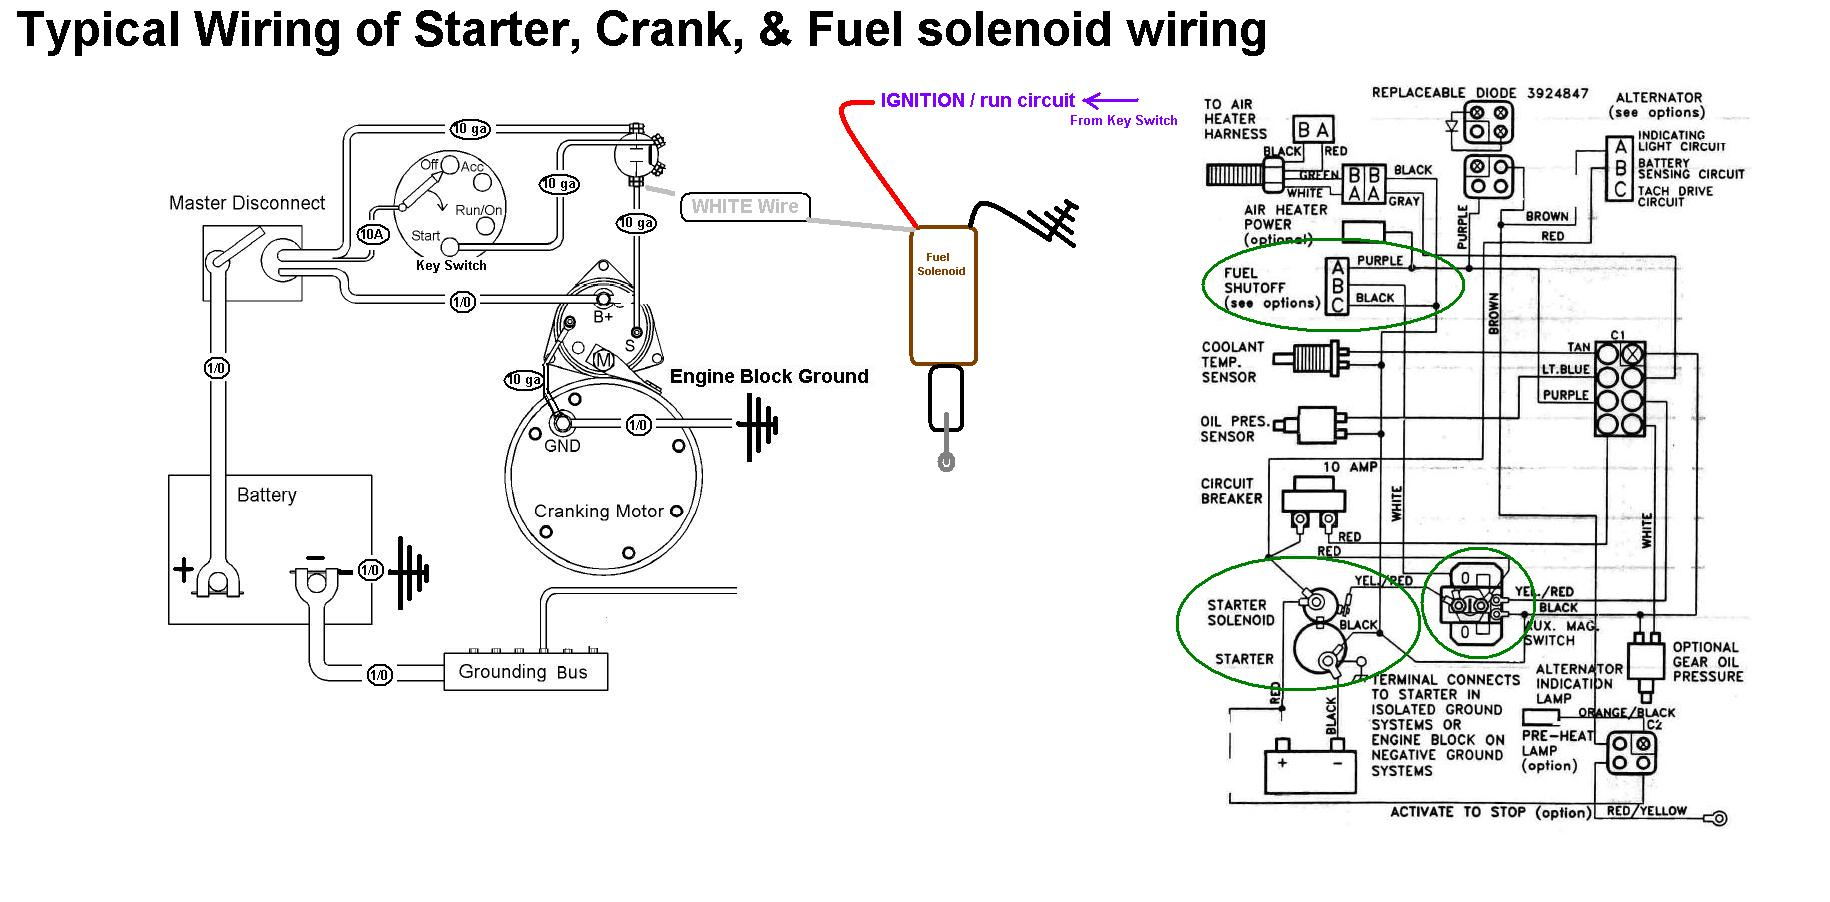 Starter Crank Fuel Shutoff Solenoid Wiring on john deere 850 alternator wiring diagram